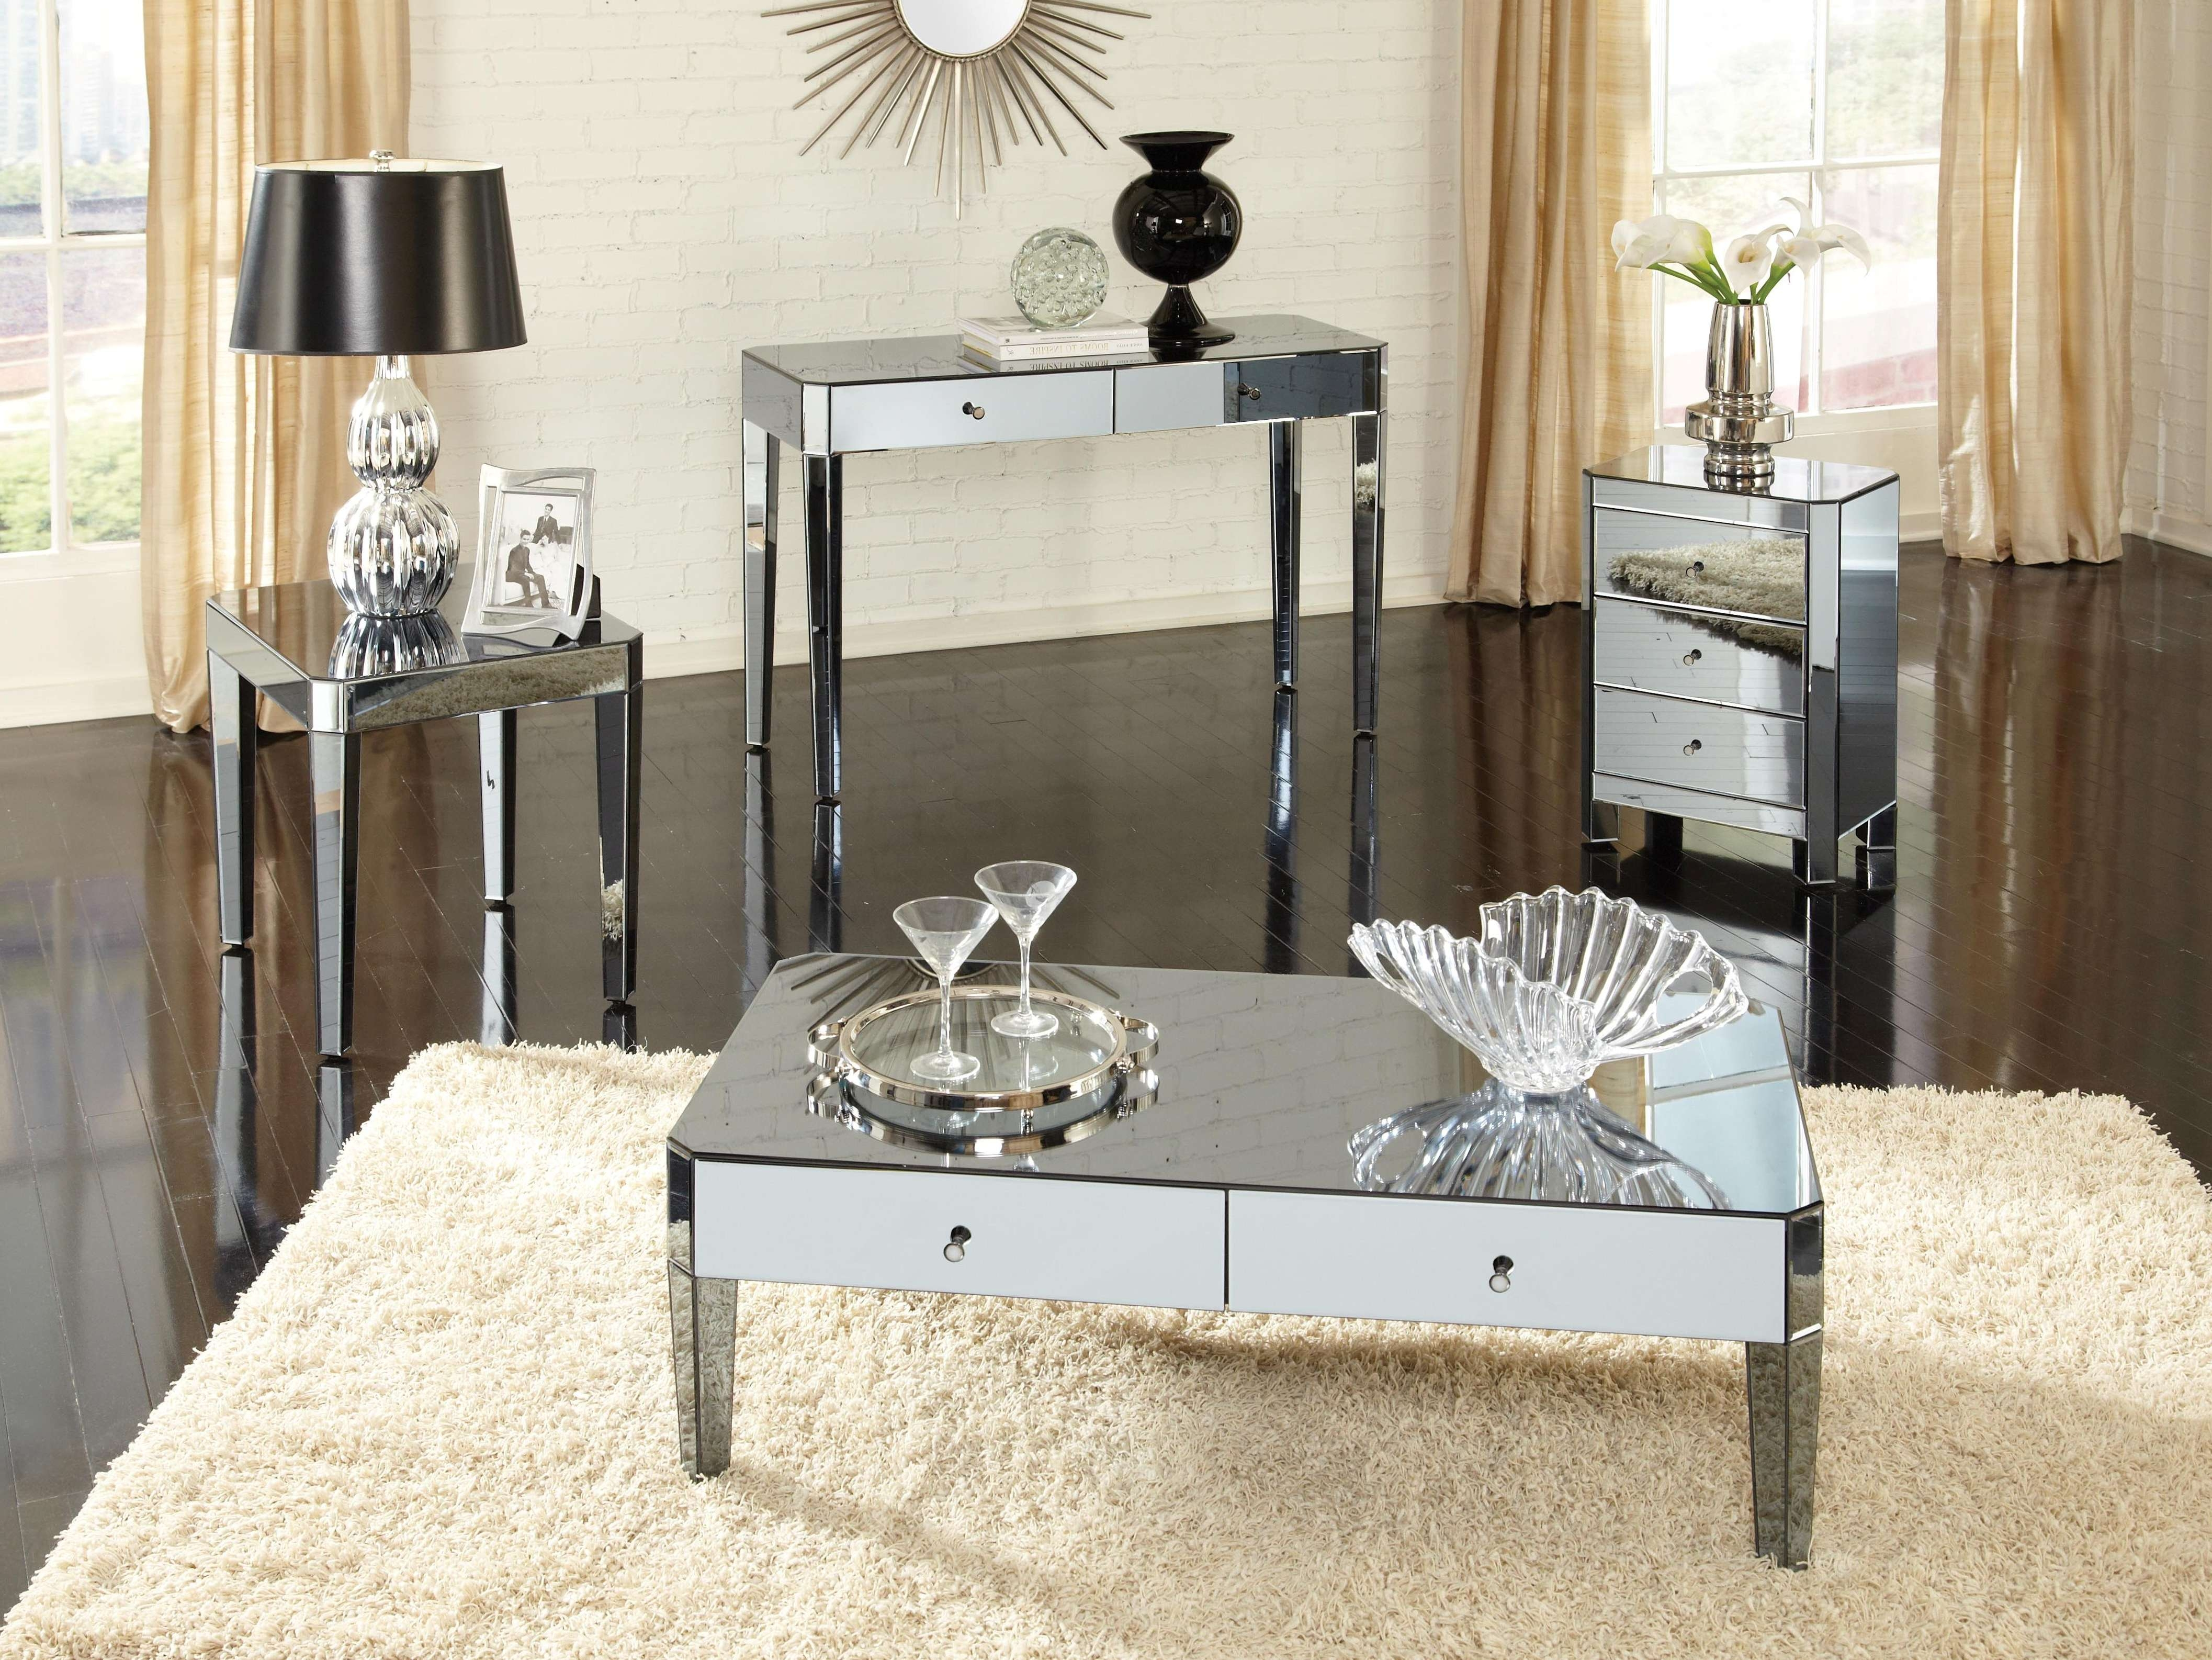 2018 Oval Mirrored Coffee Tables With Coffee Tables : Gold Mirrored Coffee Table Uttermost Henzler On (View 1 of 20)